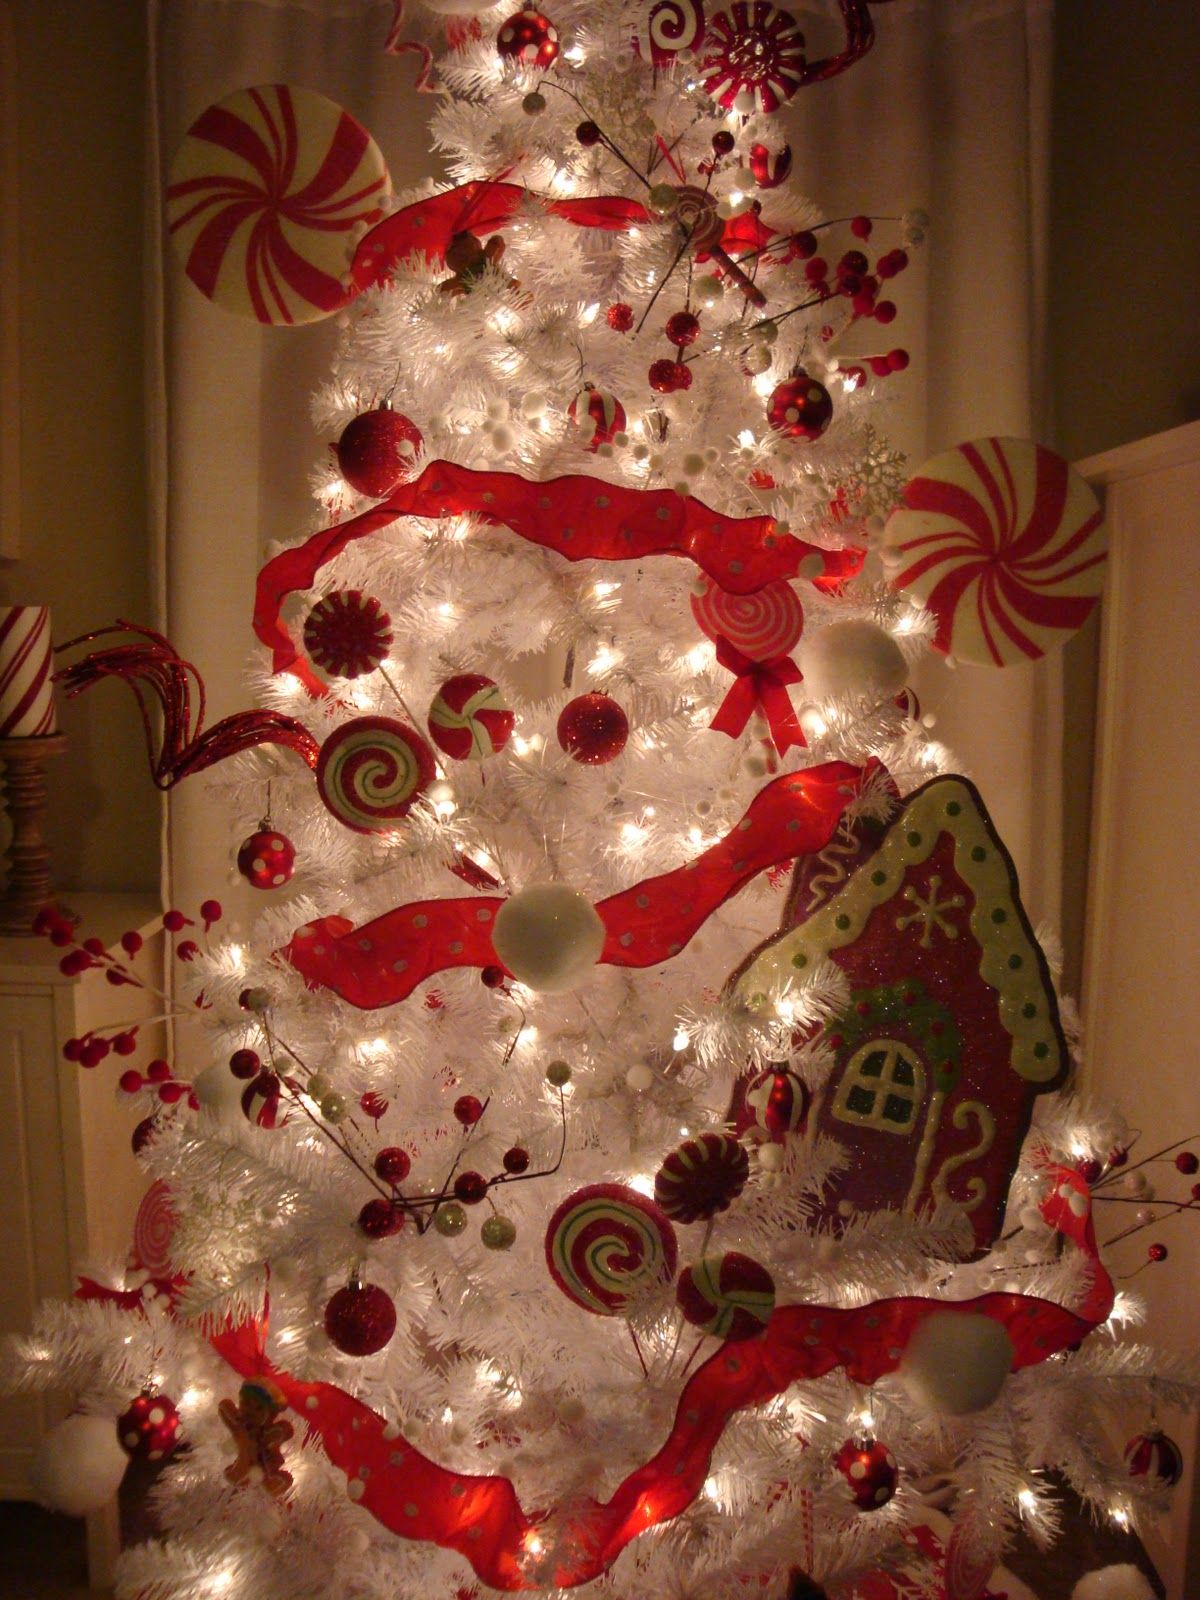 Red and white christmas tree decorating ideas - Christmas Tree Peppermint Decorations